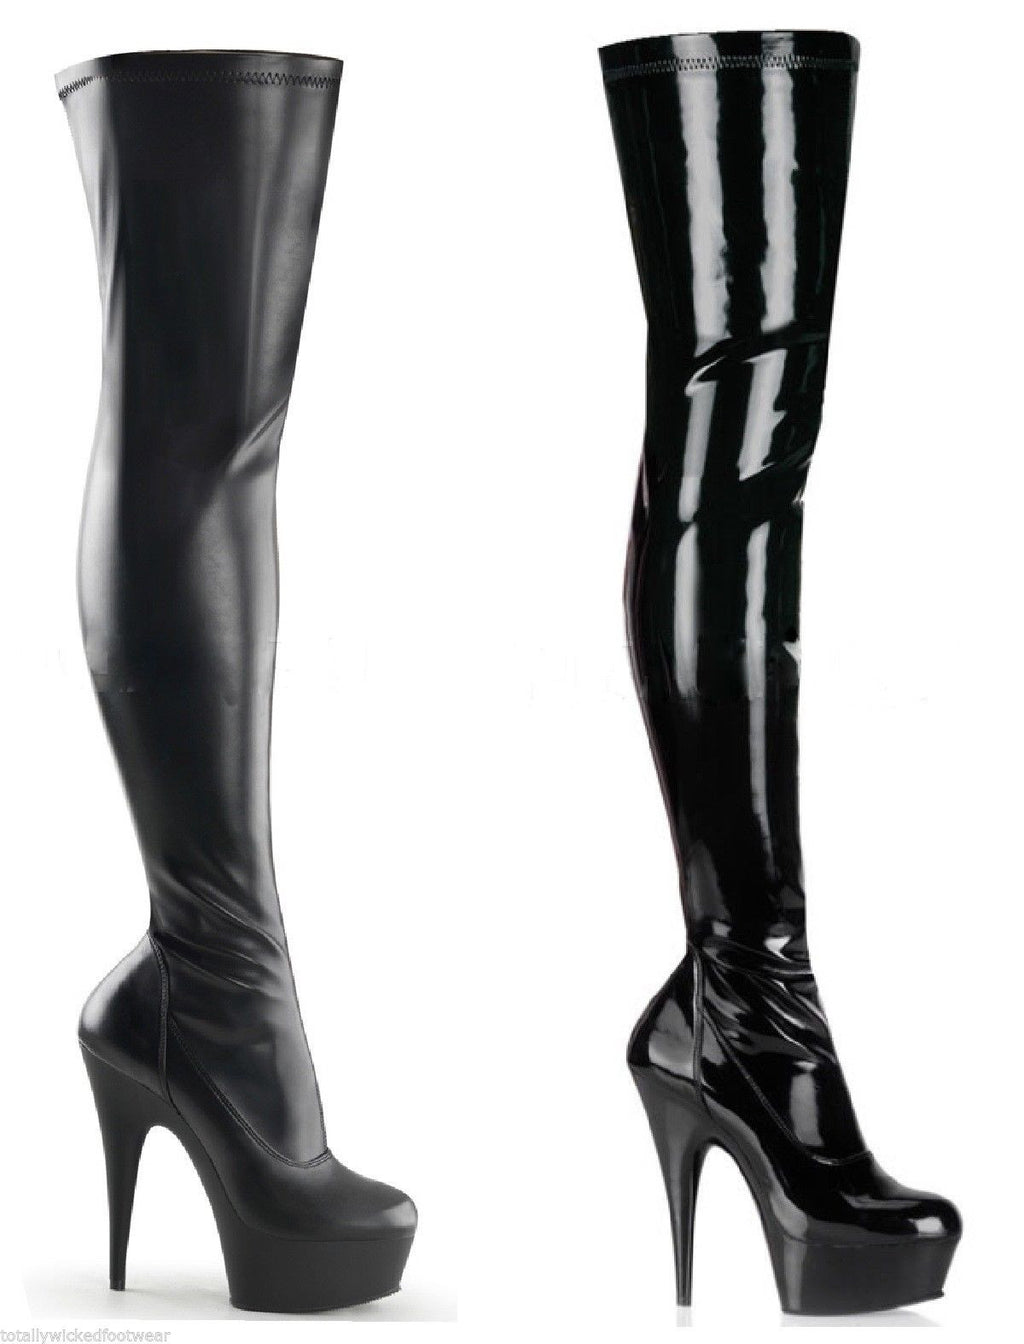 Delight 3000 Stretch Thigh Boot Black Matte Or Patent 6-14 Platform Boots